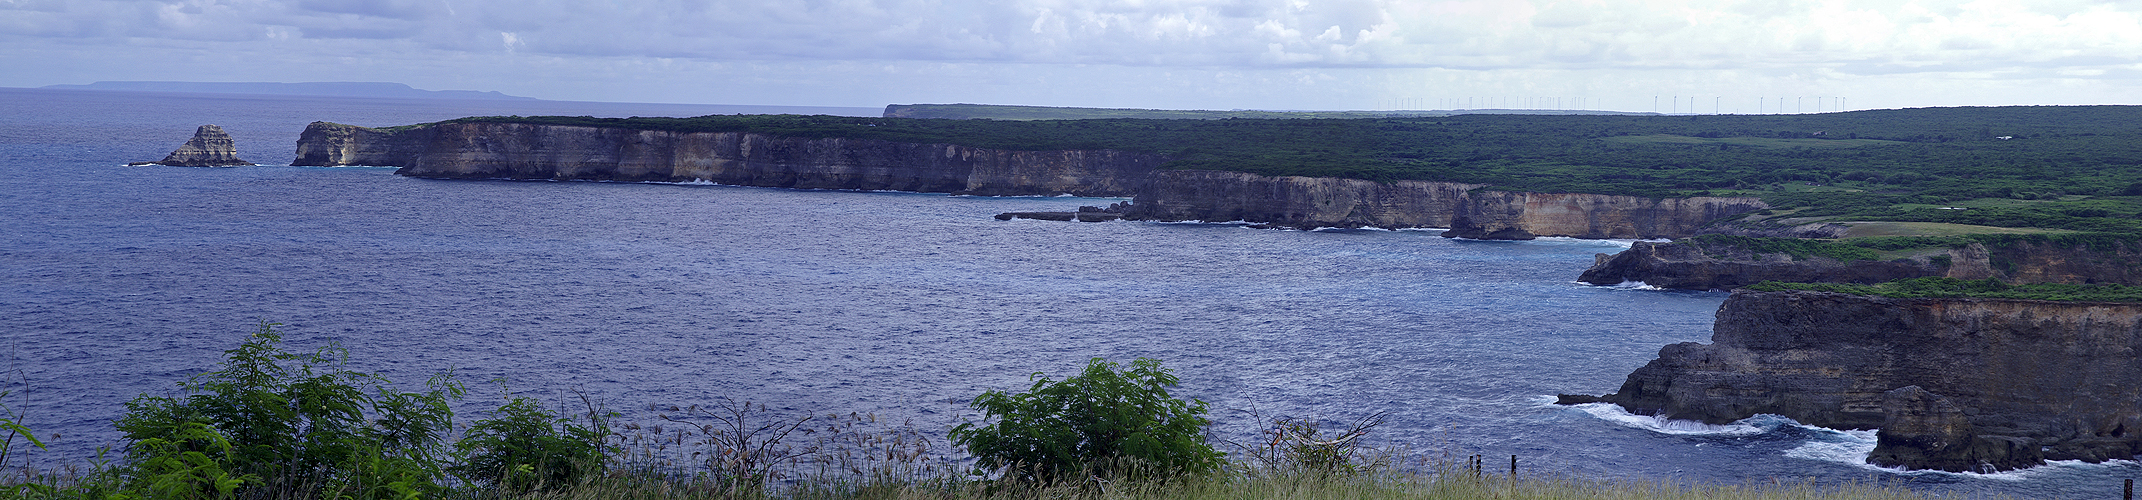 Photo panoramique de la pointe de la Grande Vigie